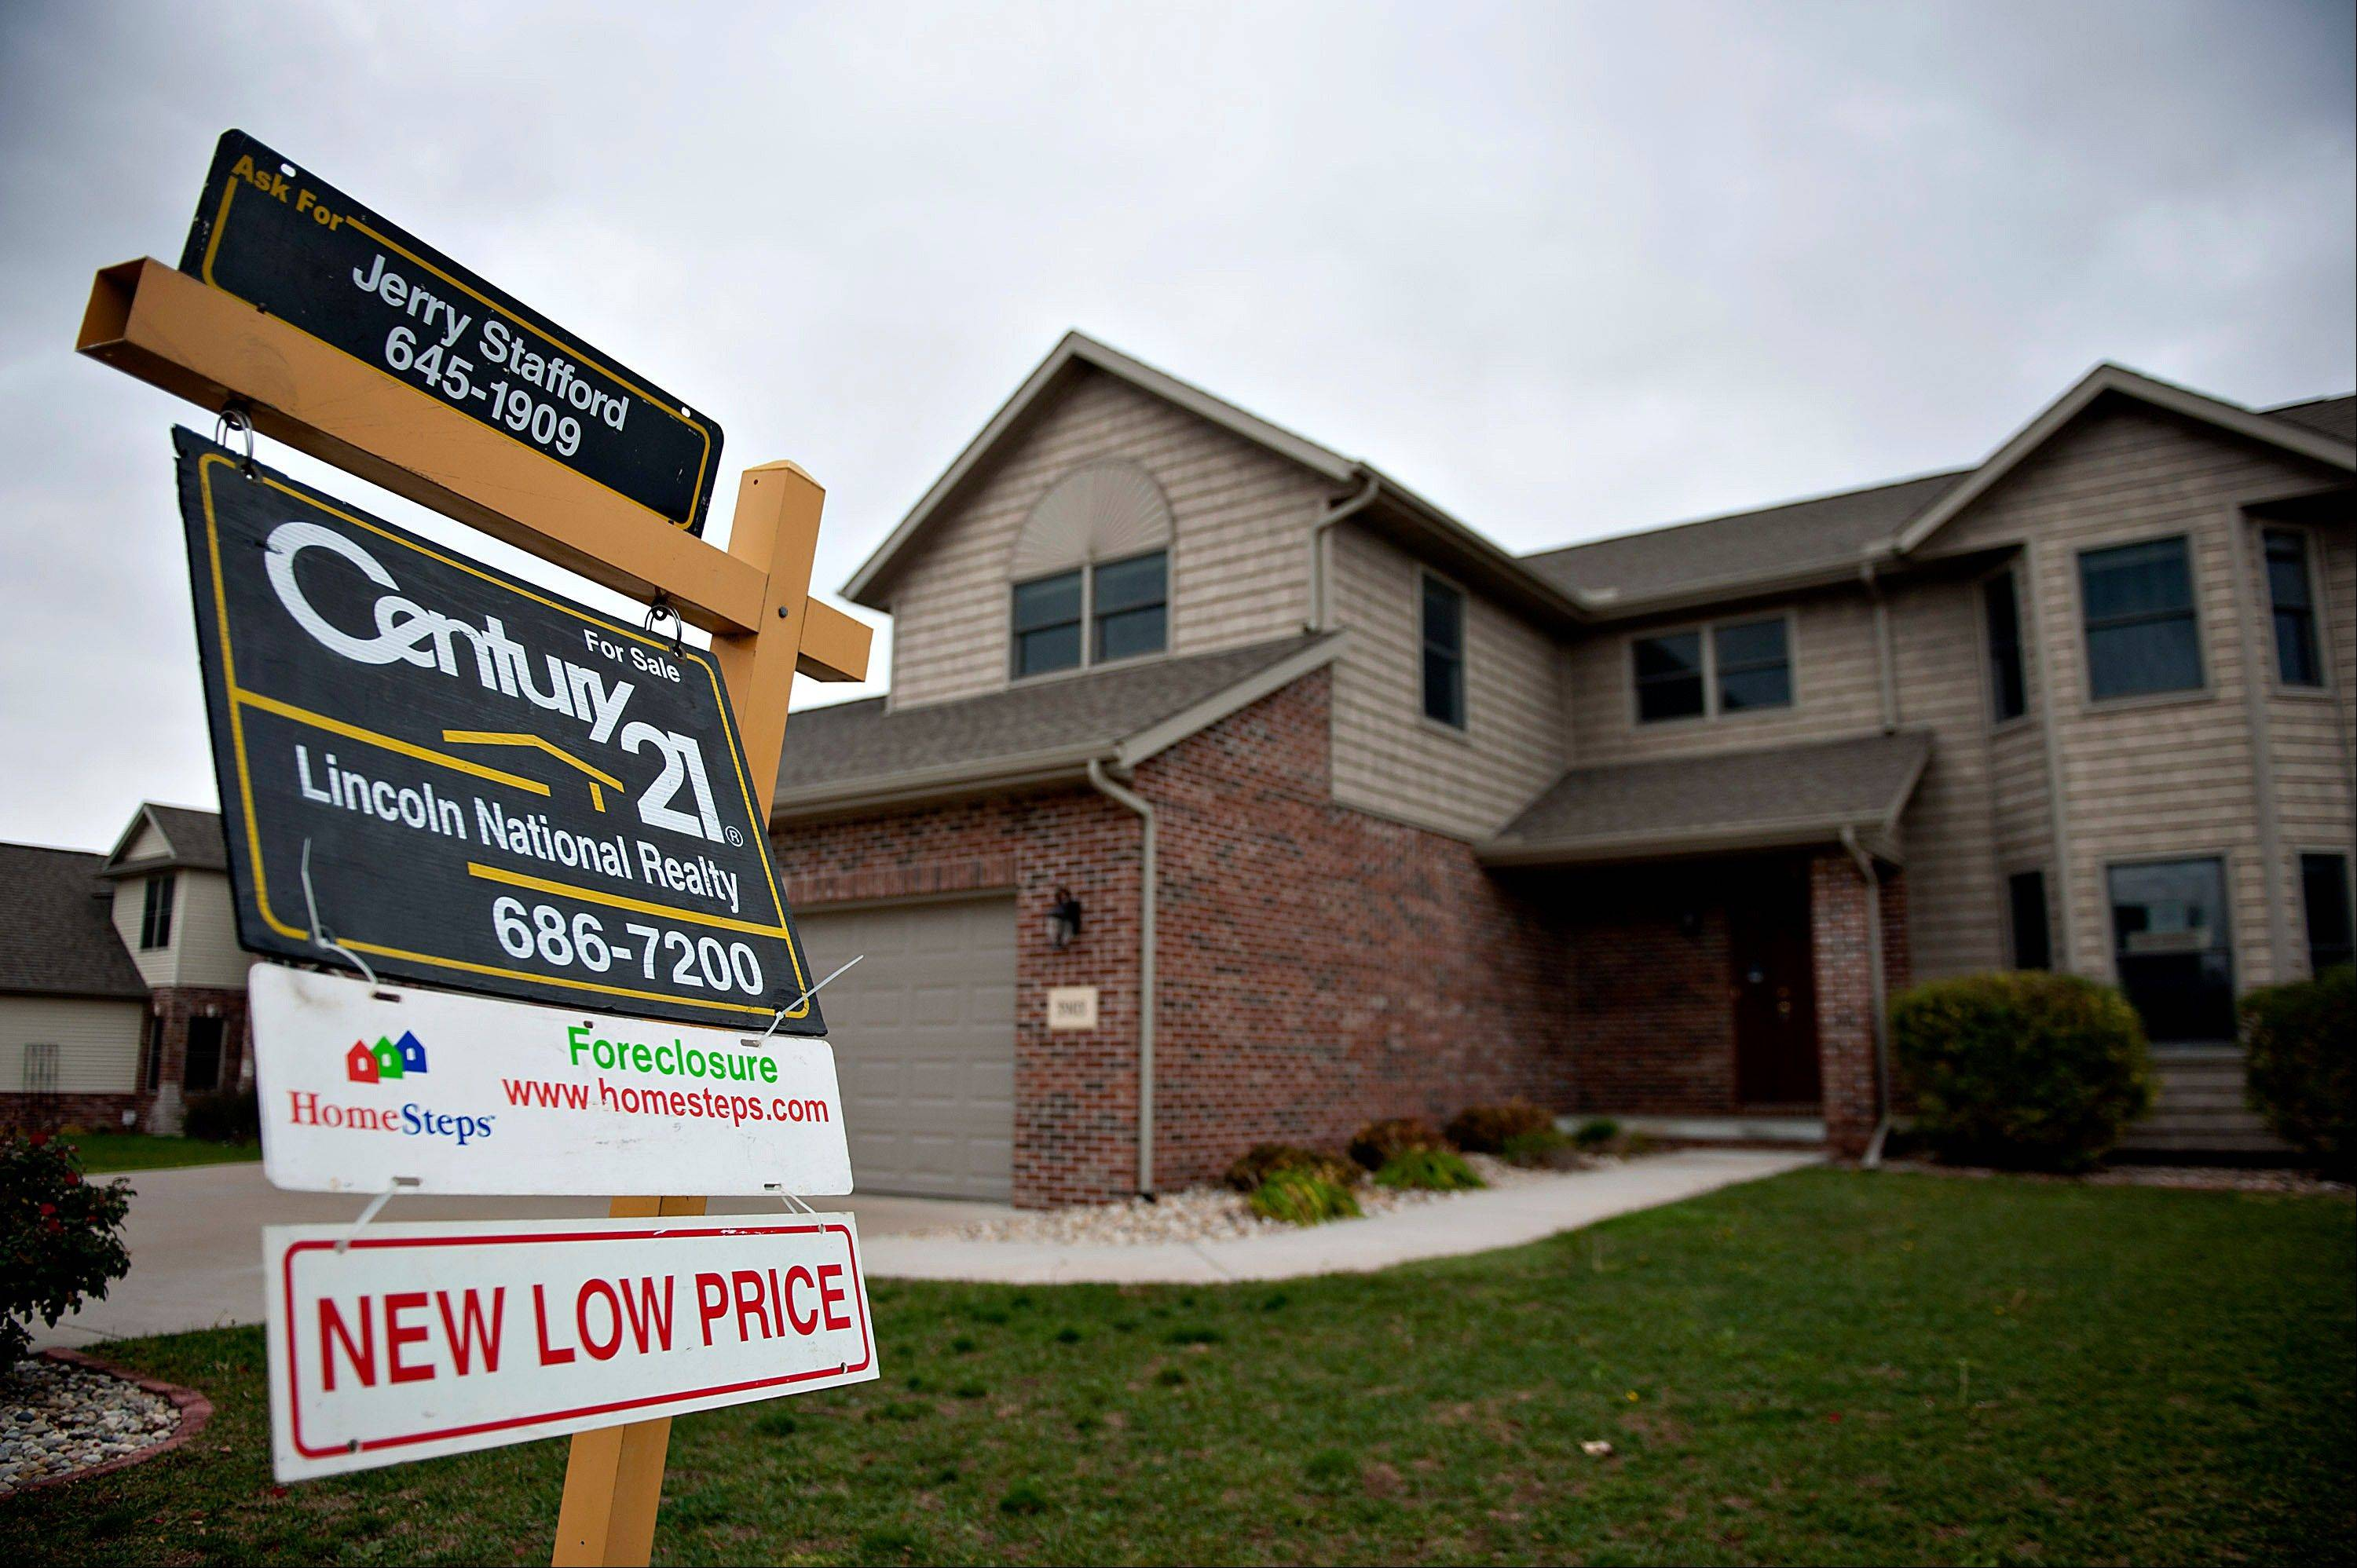 U.S. home prices rise in October from previous year